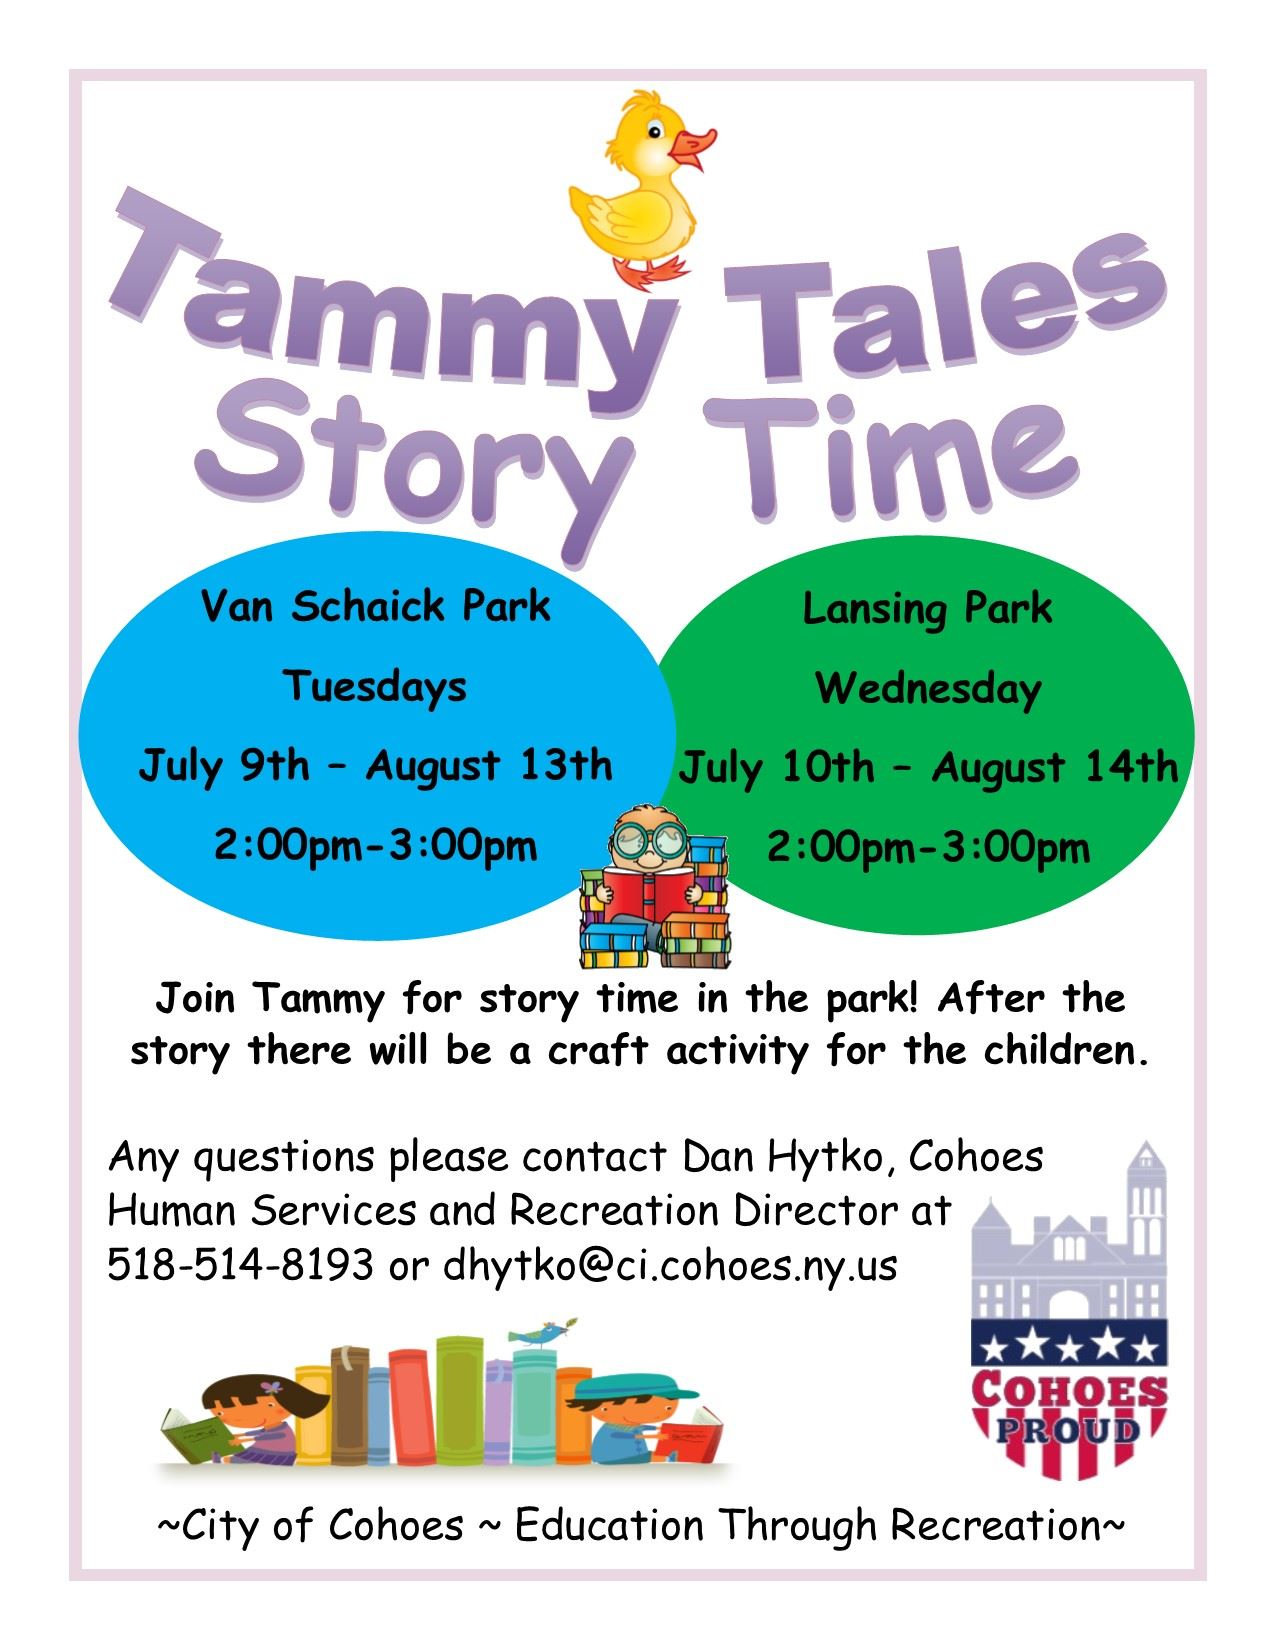 Tammy Tales Story Time Flyer